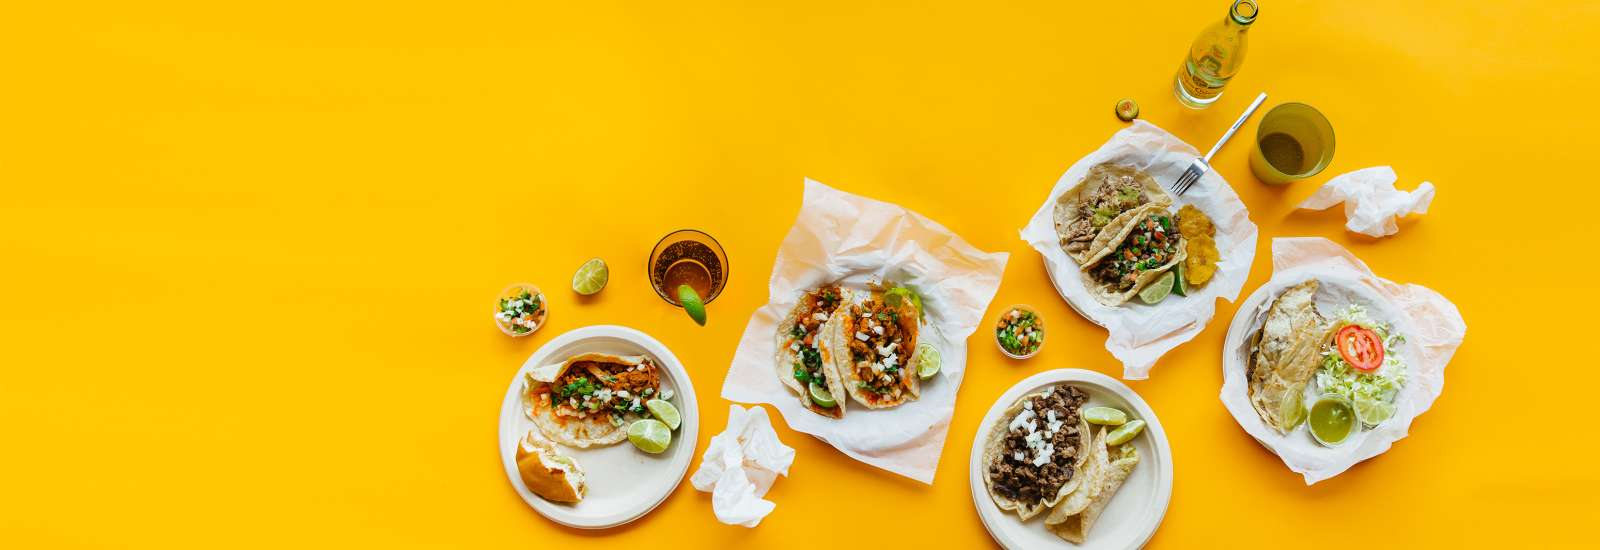 Taco Plates on a yellow background